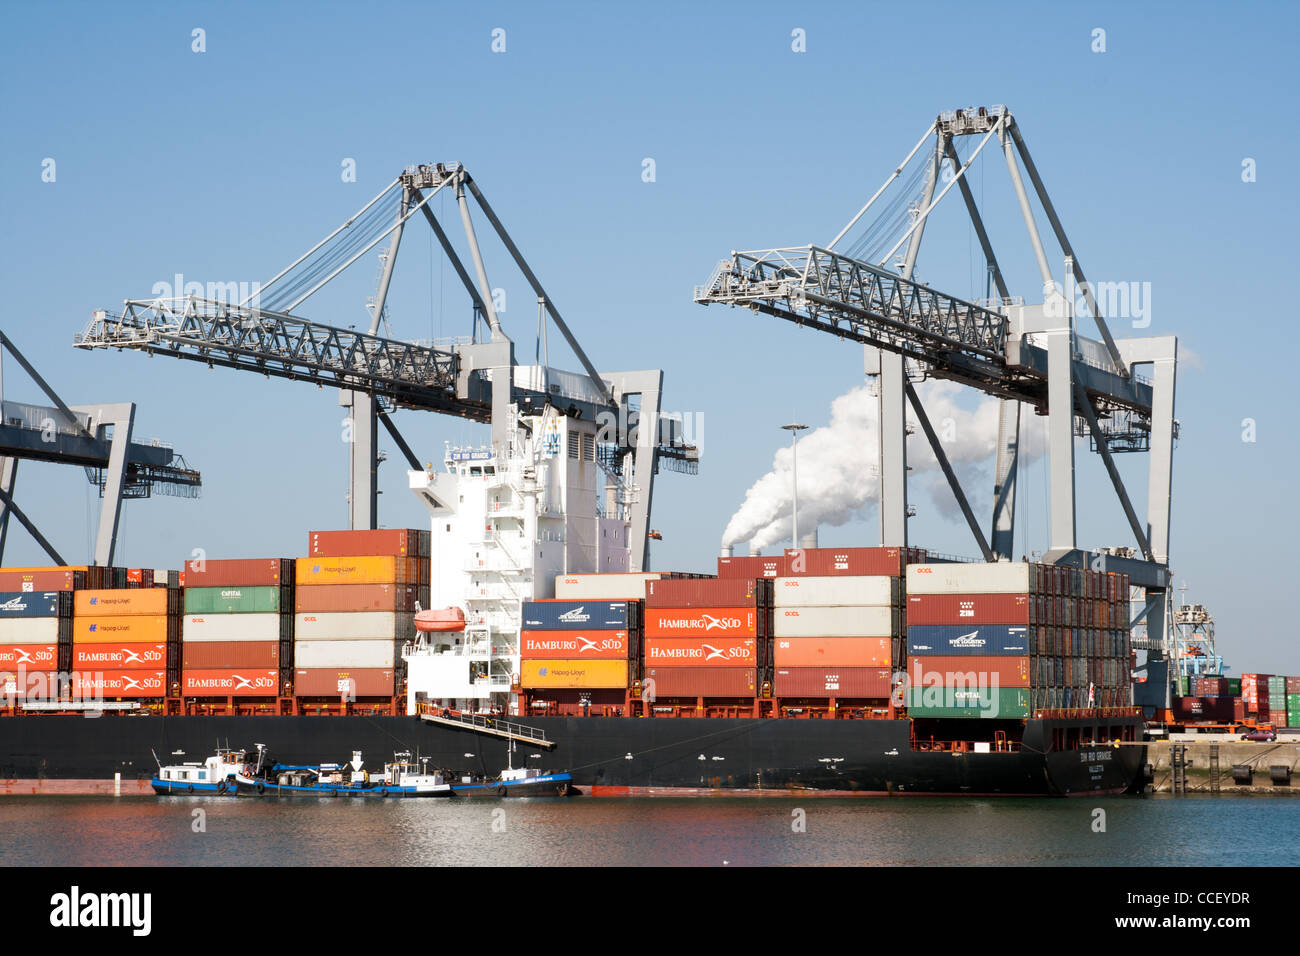 Container ship in the port of Rotterdam. - Stock Image